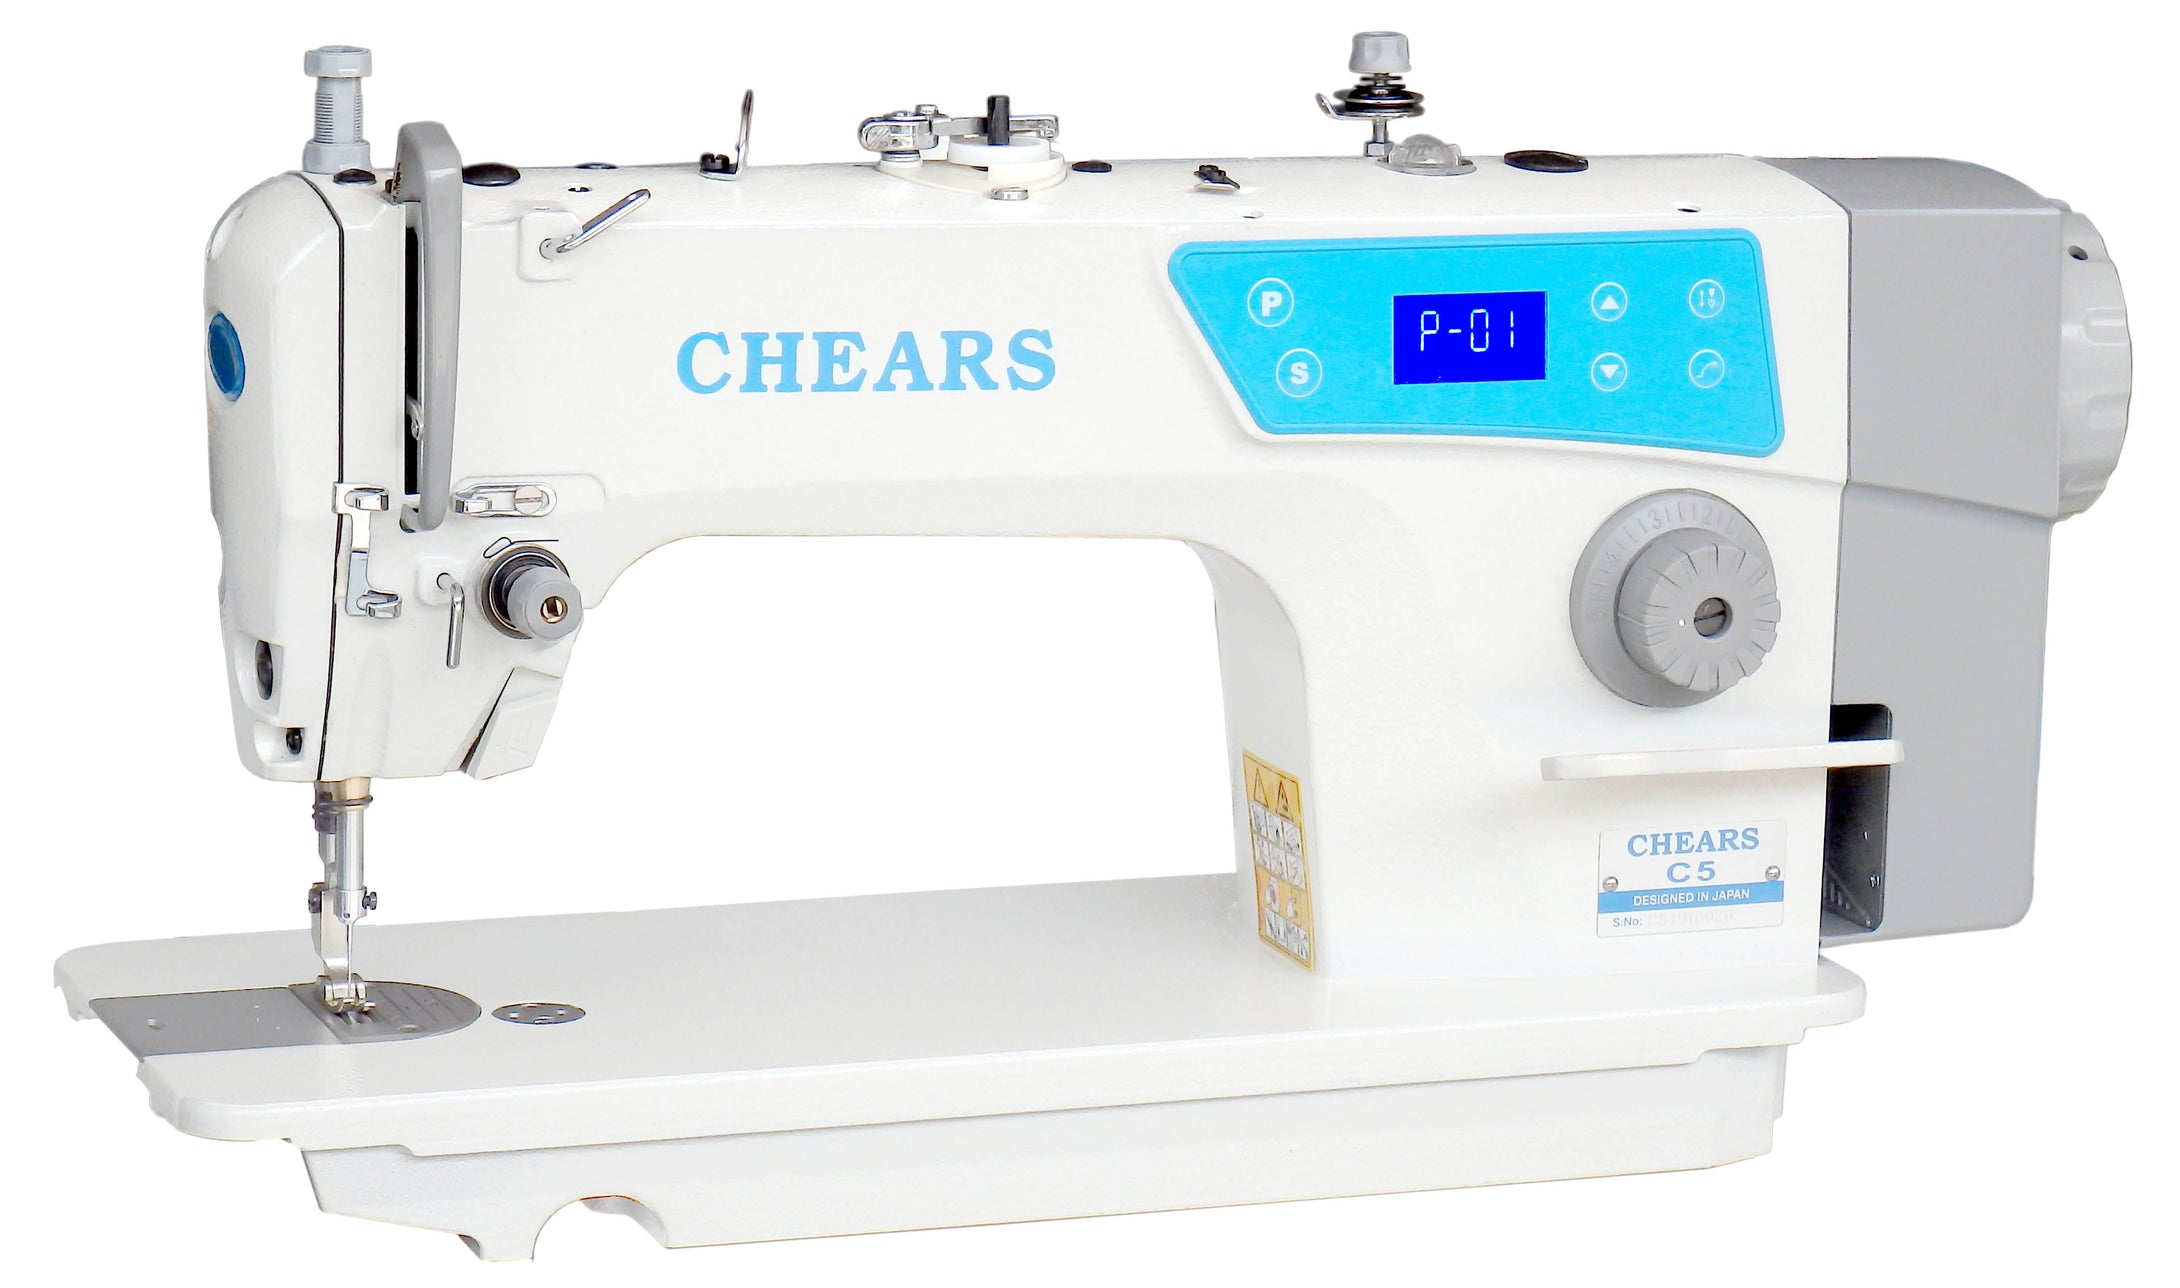 CHEARS C5 Direct Drive Sewing Machine